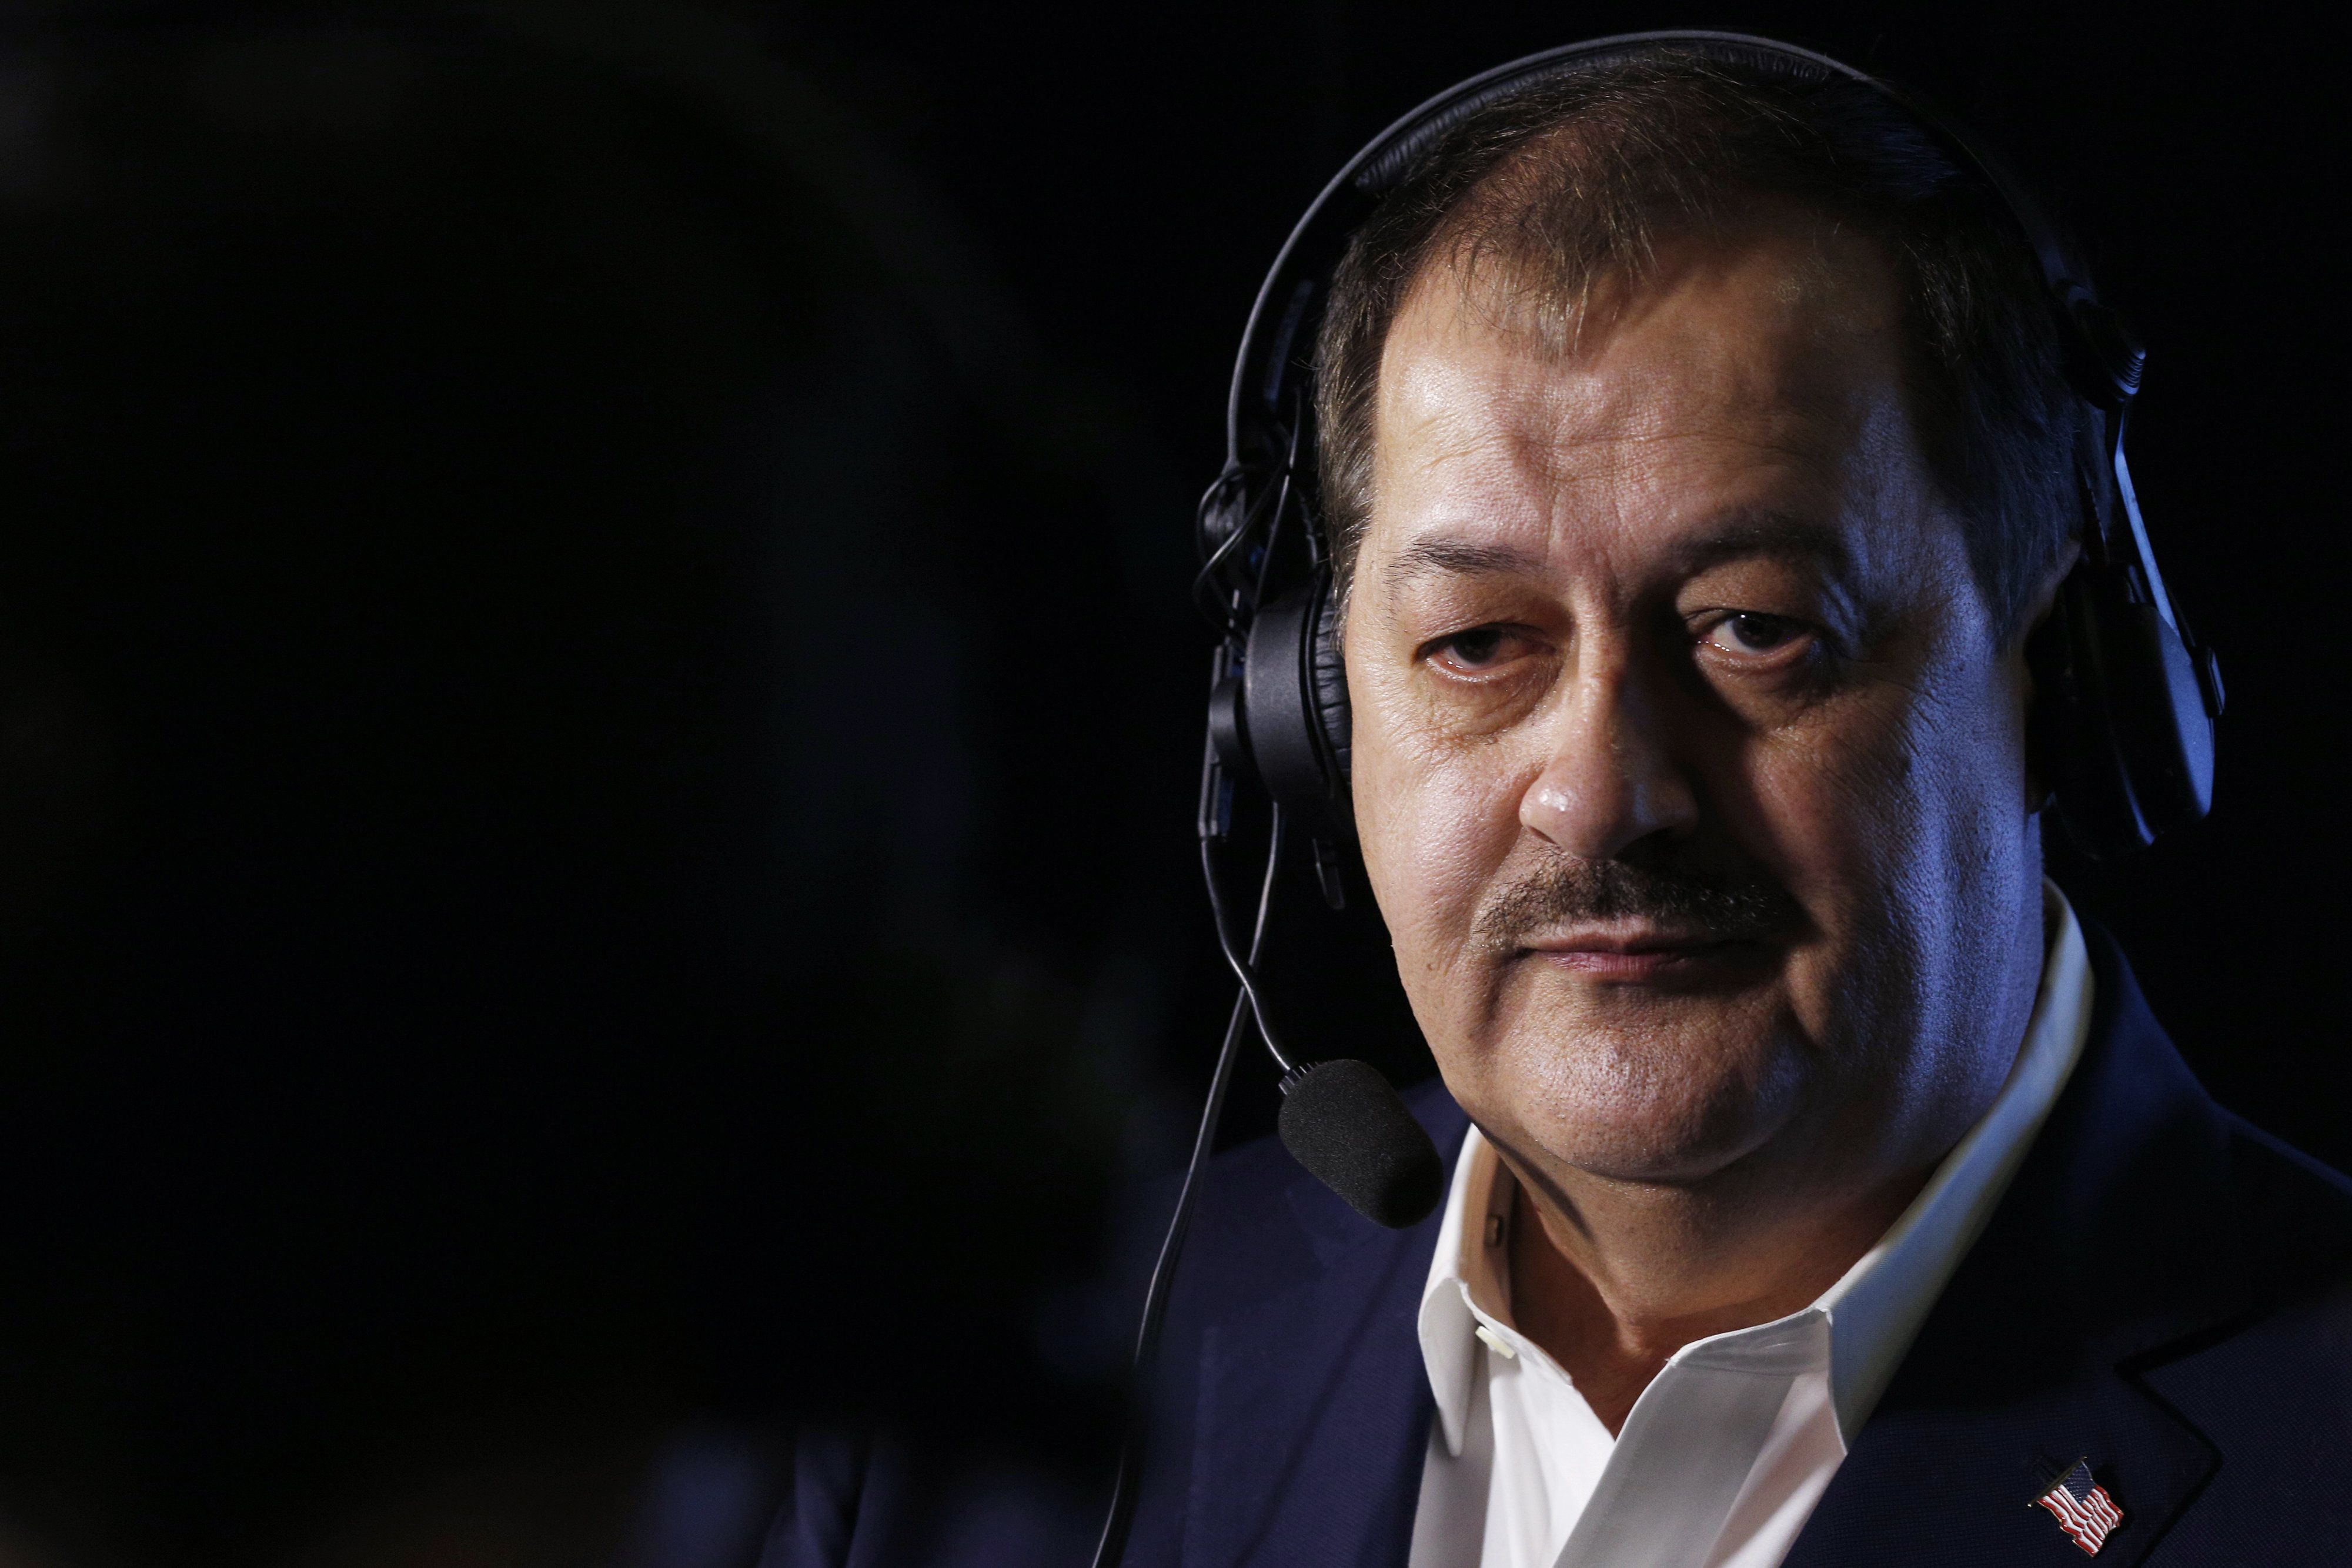 Former Massey Energy CEO Don Blankenship, Republican U.S. Senate candidate from West Virginia, wears a headset while speaking to the media during an election night event in Charleston, West Virginia, U.S., on Tuesday, May 8, 2018. Republican officials were thrown into a panic on the cusp of Tuesday's three crucial Senate primaries as they confronted a late surge by controversial and confrontational candidate Blankenship. Photographer: Luke Sharrett/Bloomberg via Getty Images